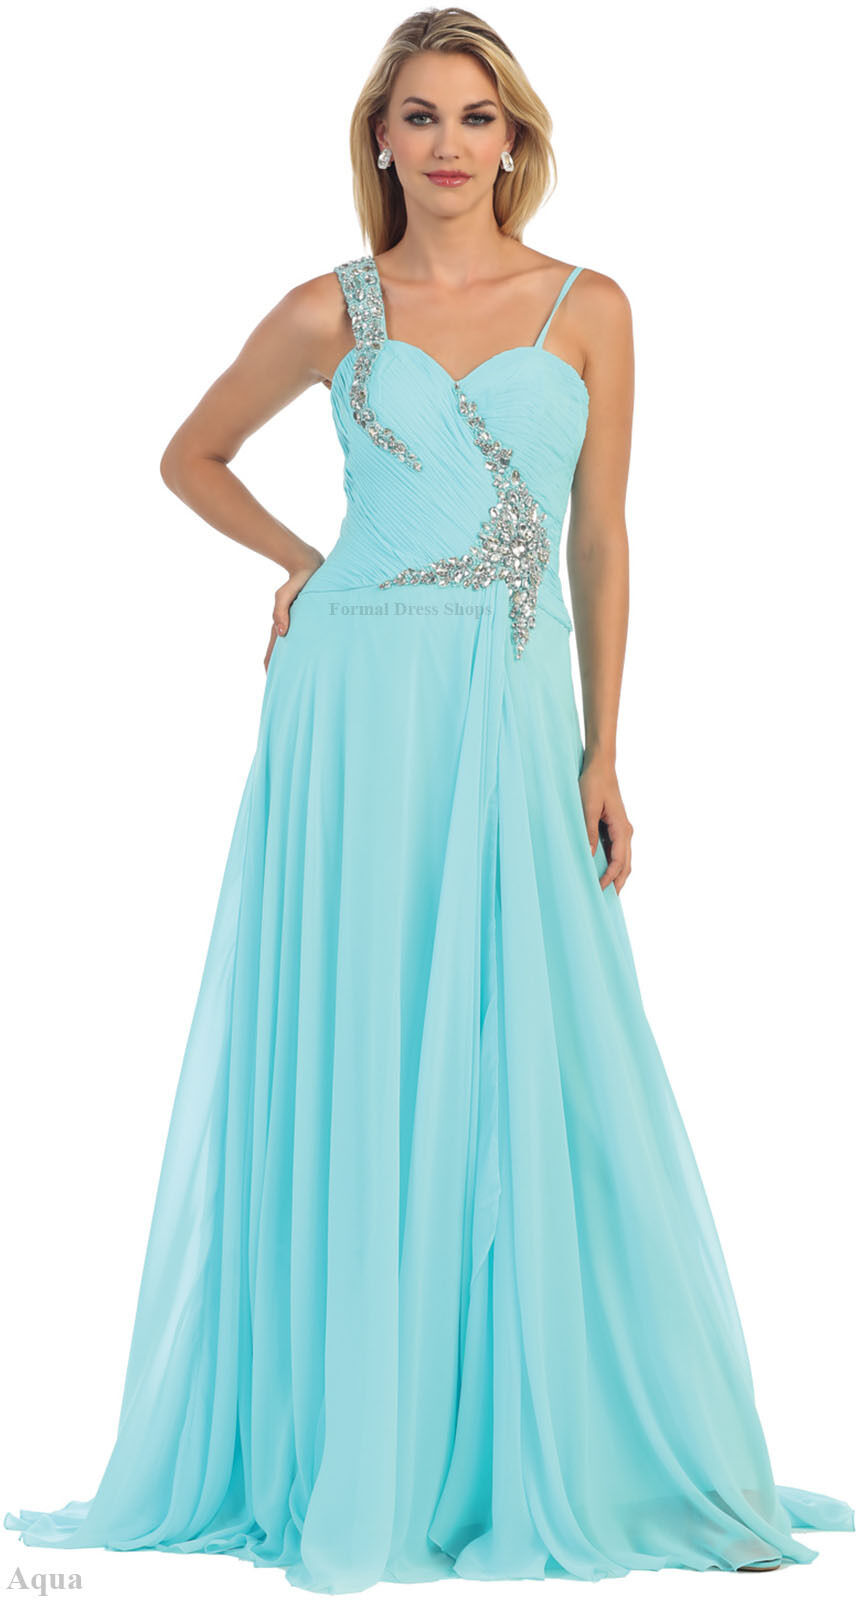 SALE ! PROM EVENING DRESSES UNDER $100 LONG CRUISE FORMAL ...